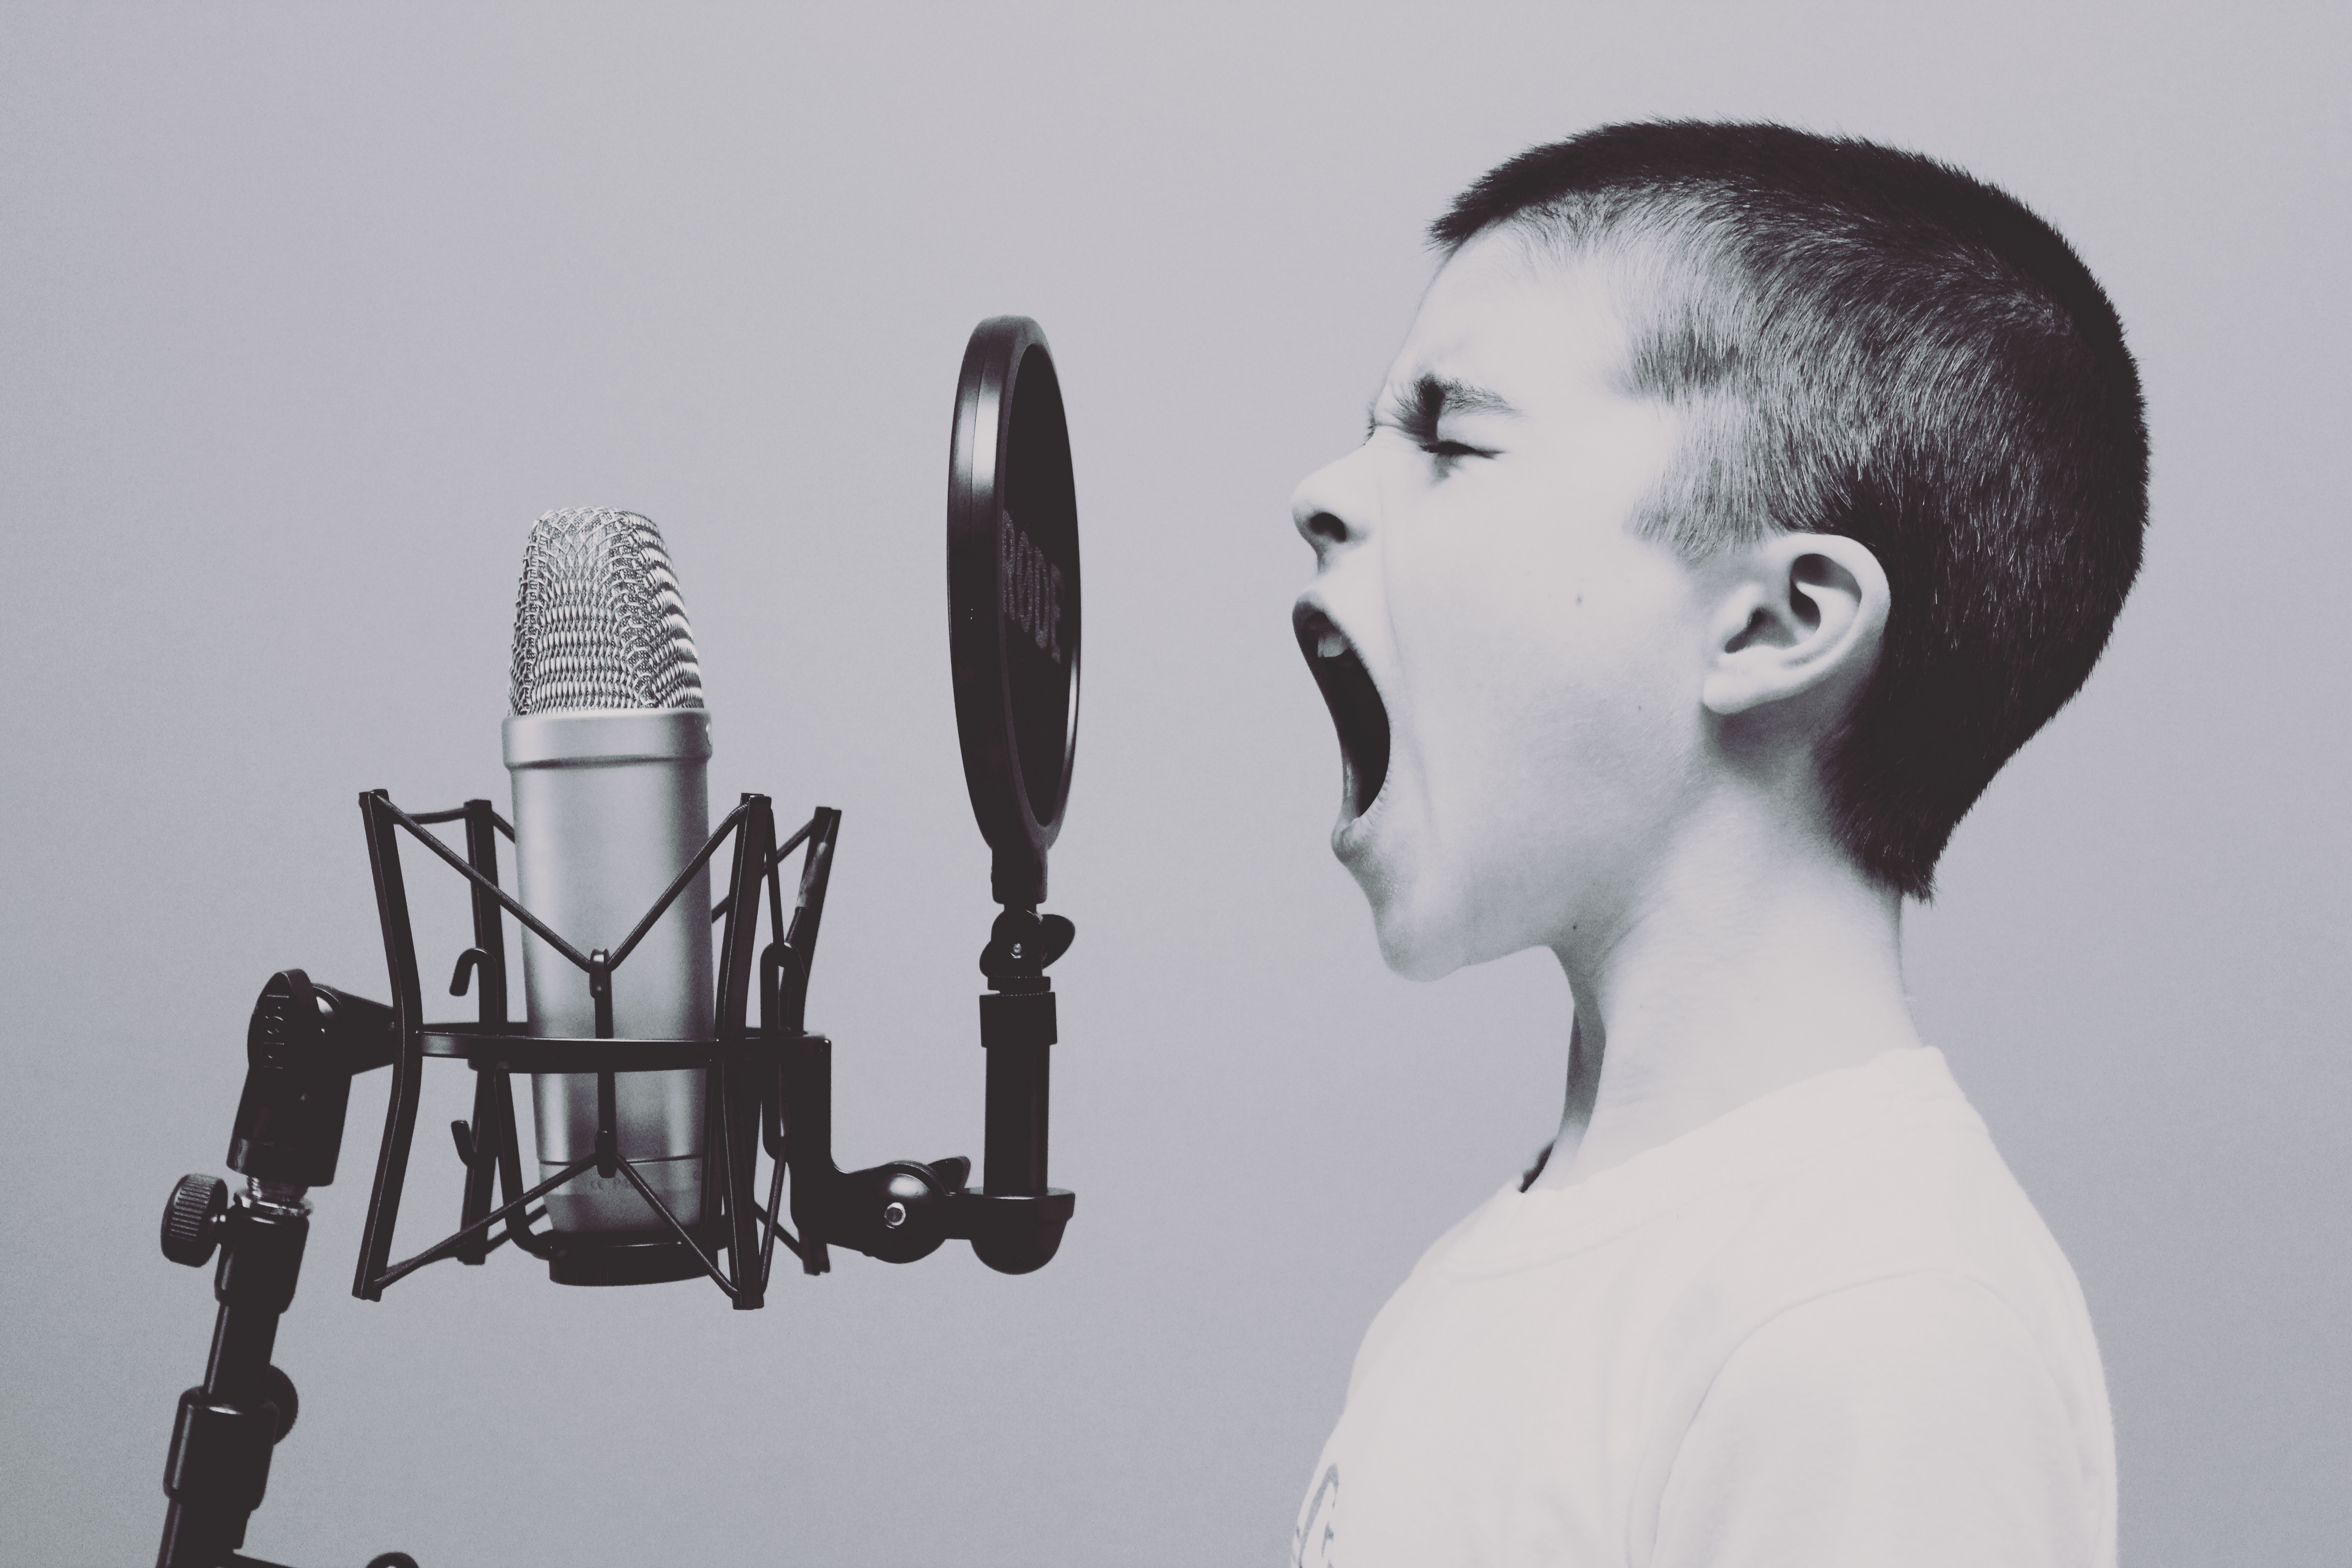 Boy screaming into microphone. Sell voiceover services online.